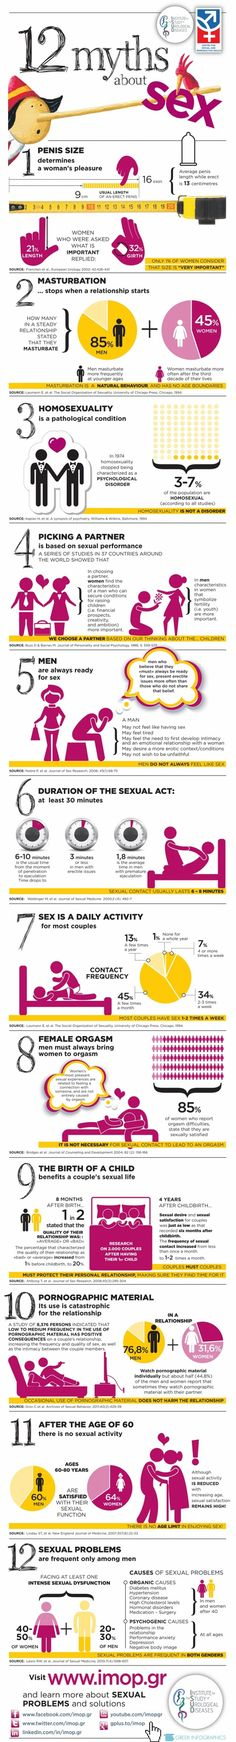 Leerzame infographic over sex en alle mythes daarover...